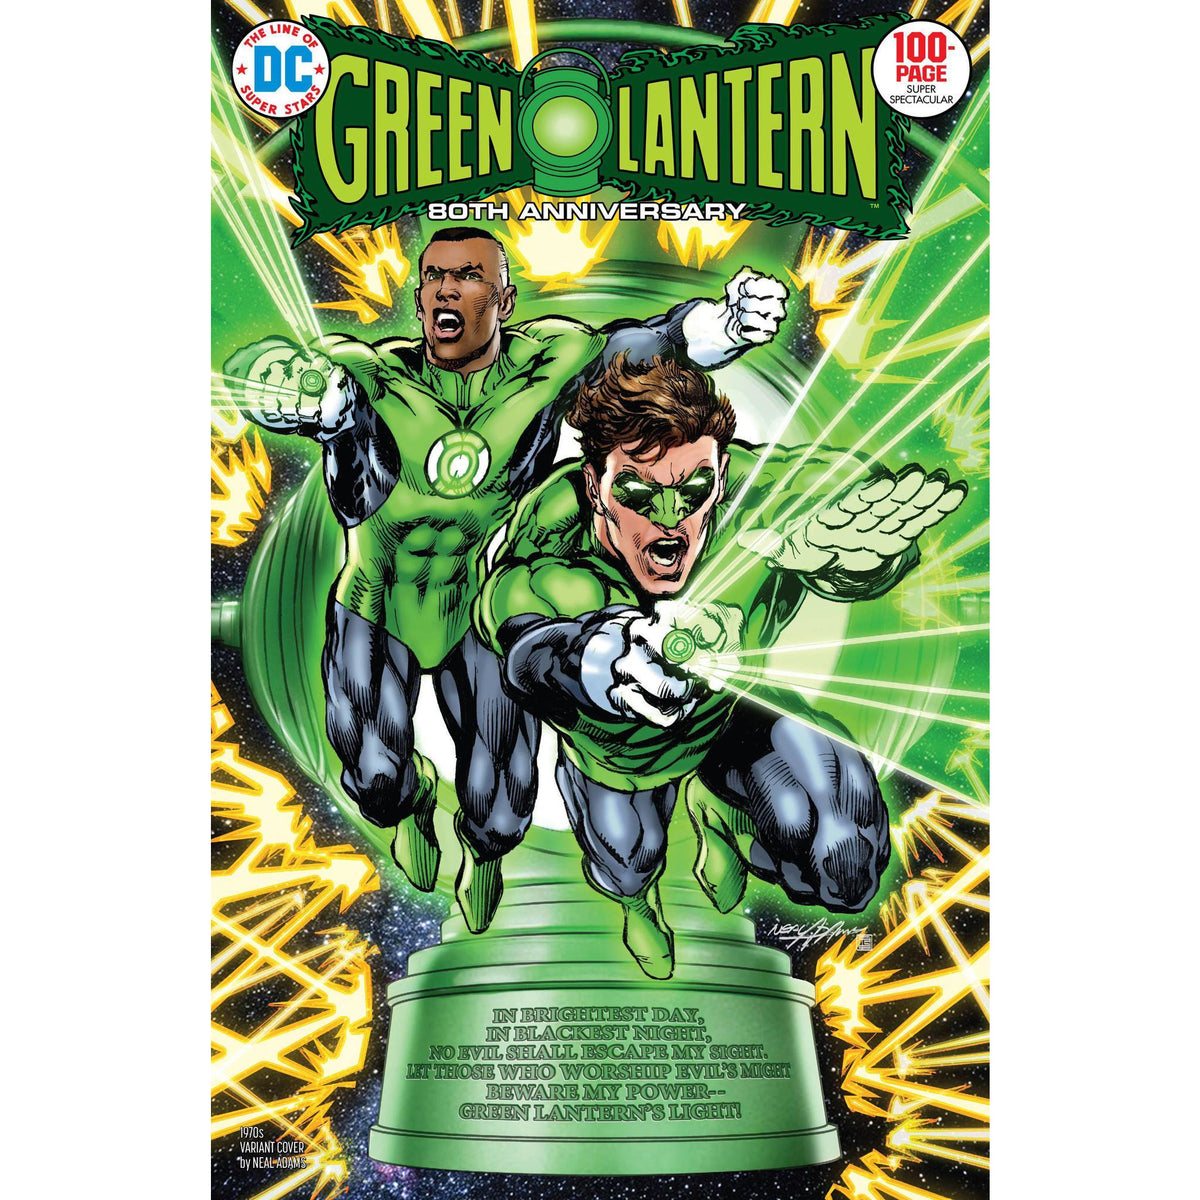 GREEN LANTERN 80TH ANNIVERSARY 100 PAGE SUPER SPECTACULAR #1 - 1970S ADAMS COVER E - DC COMICS